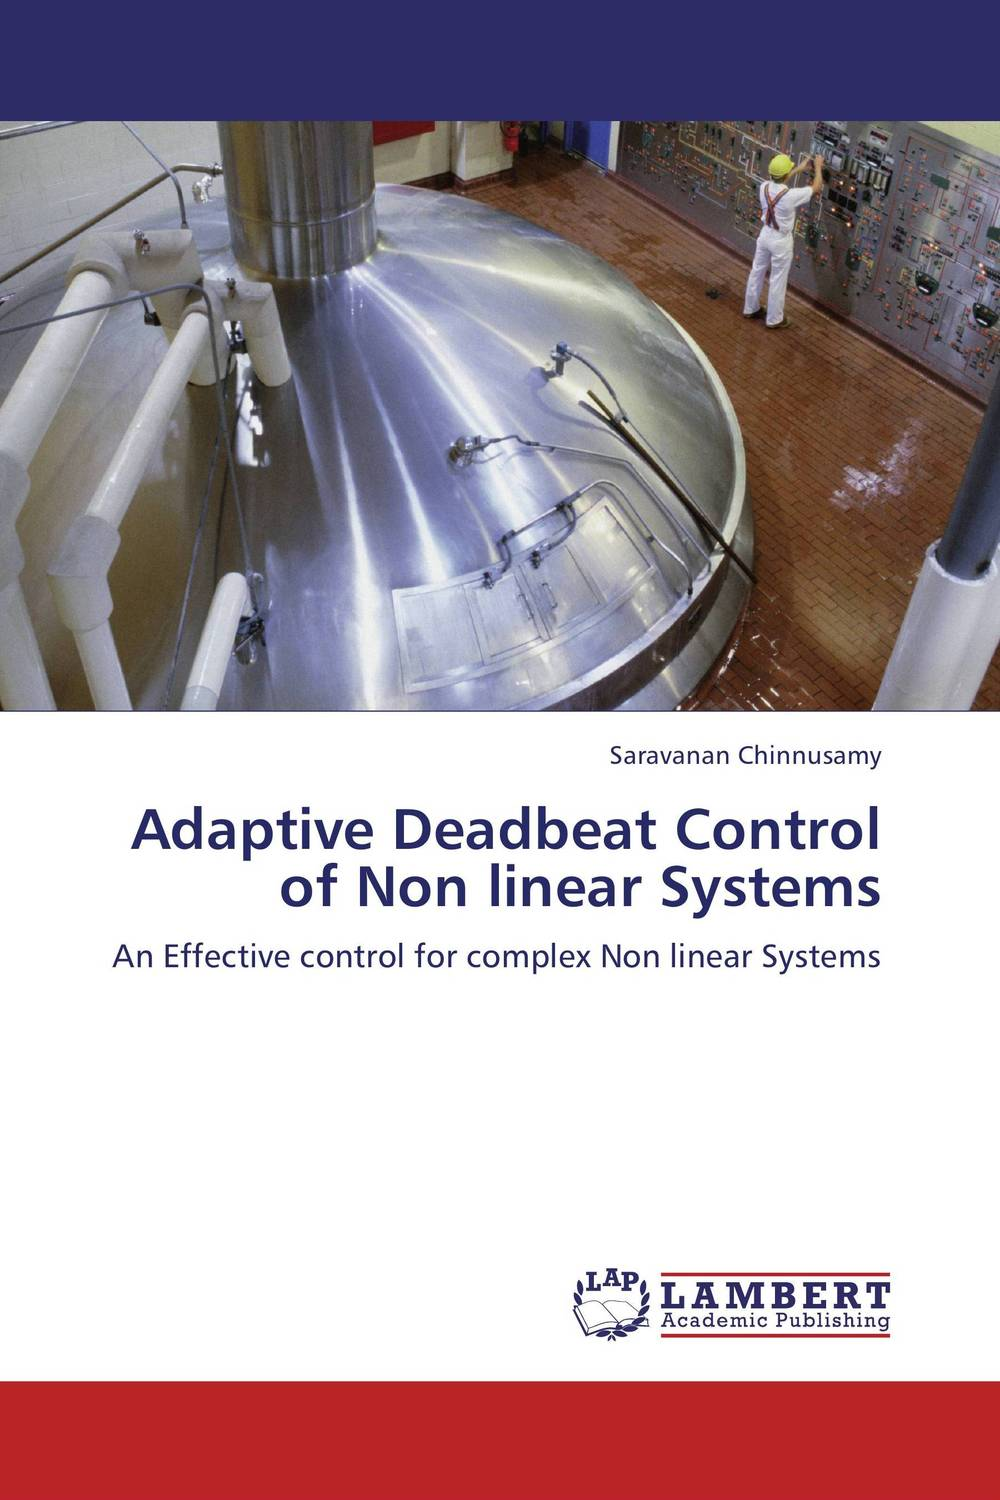 Adaptive Deadbeat Control of Non linear Systems n j patil r h chile and l m waghmare design of adaptive fuzzy controllers